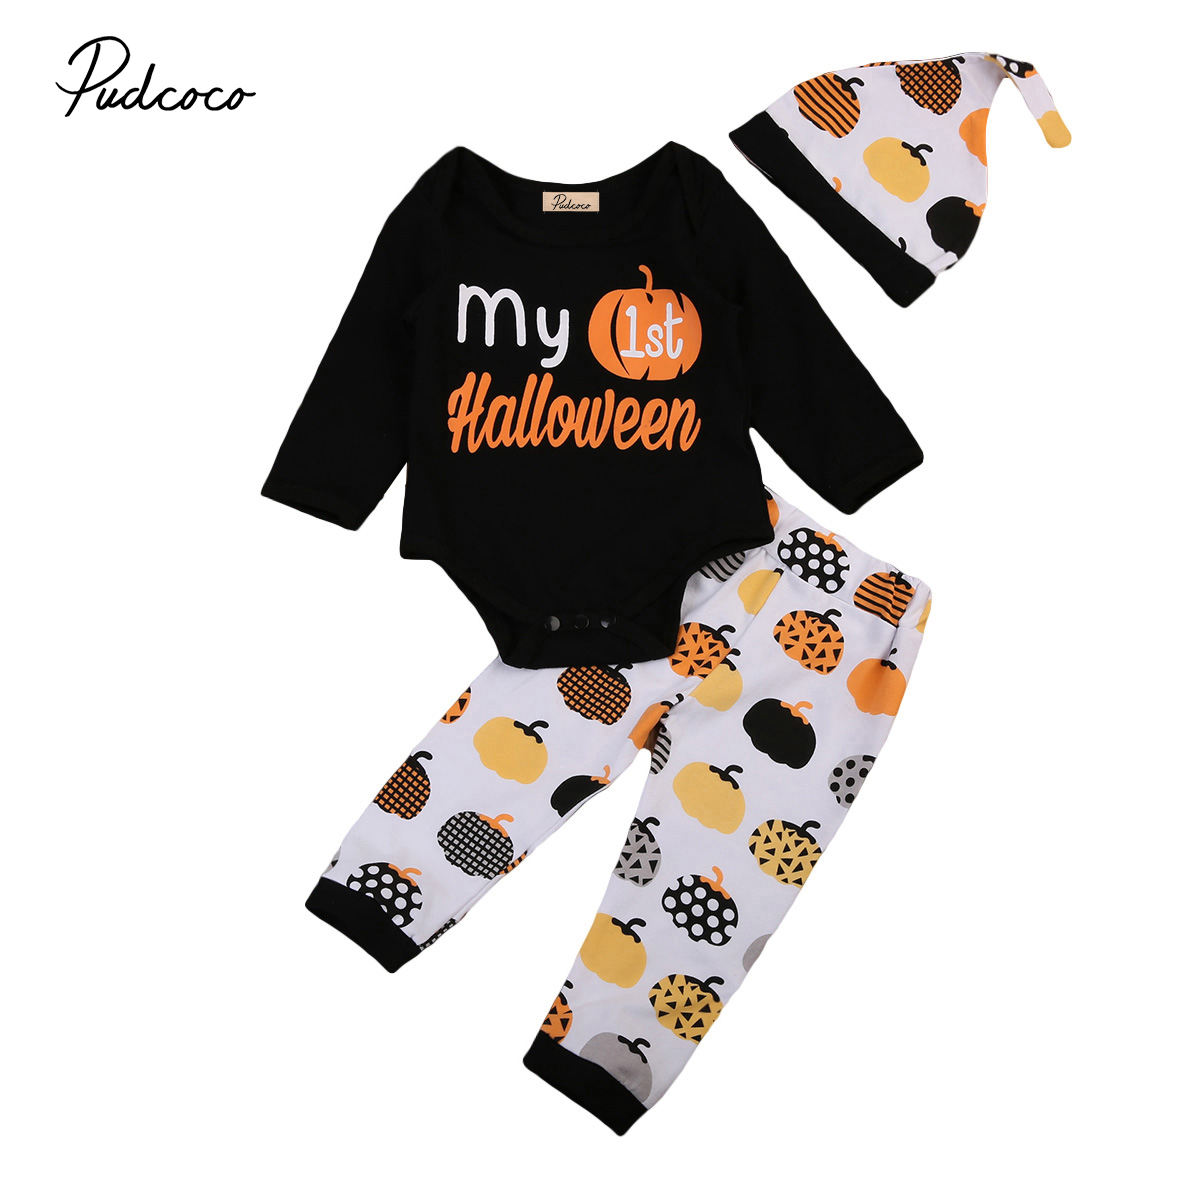 2017 Brand New Infant Toddler Newborn Baby Boy Girl Hallowen Long Sleeve Bodysuit Jumpsuit Pants Leggings Hat 3Pcs Outfits Set minnie newborn baby girl clothes gold ruffle infant bodysuit bloomer headband set winter jumpsuit toddler birthday outfits